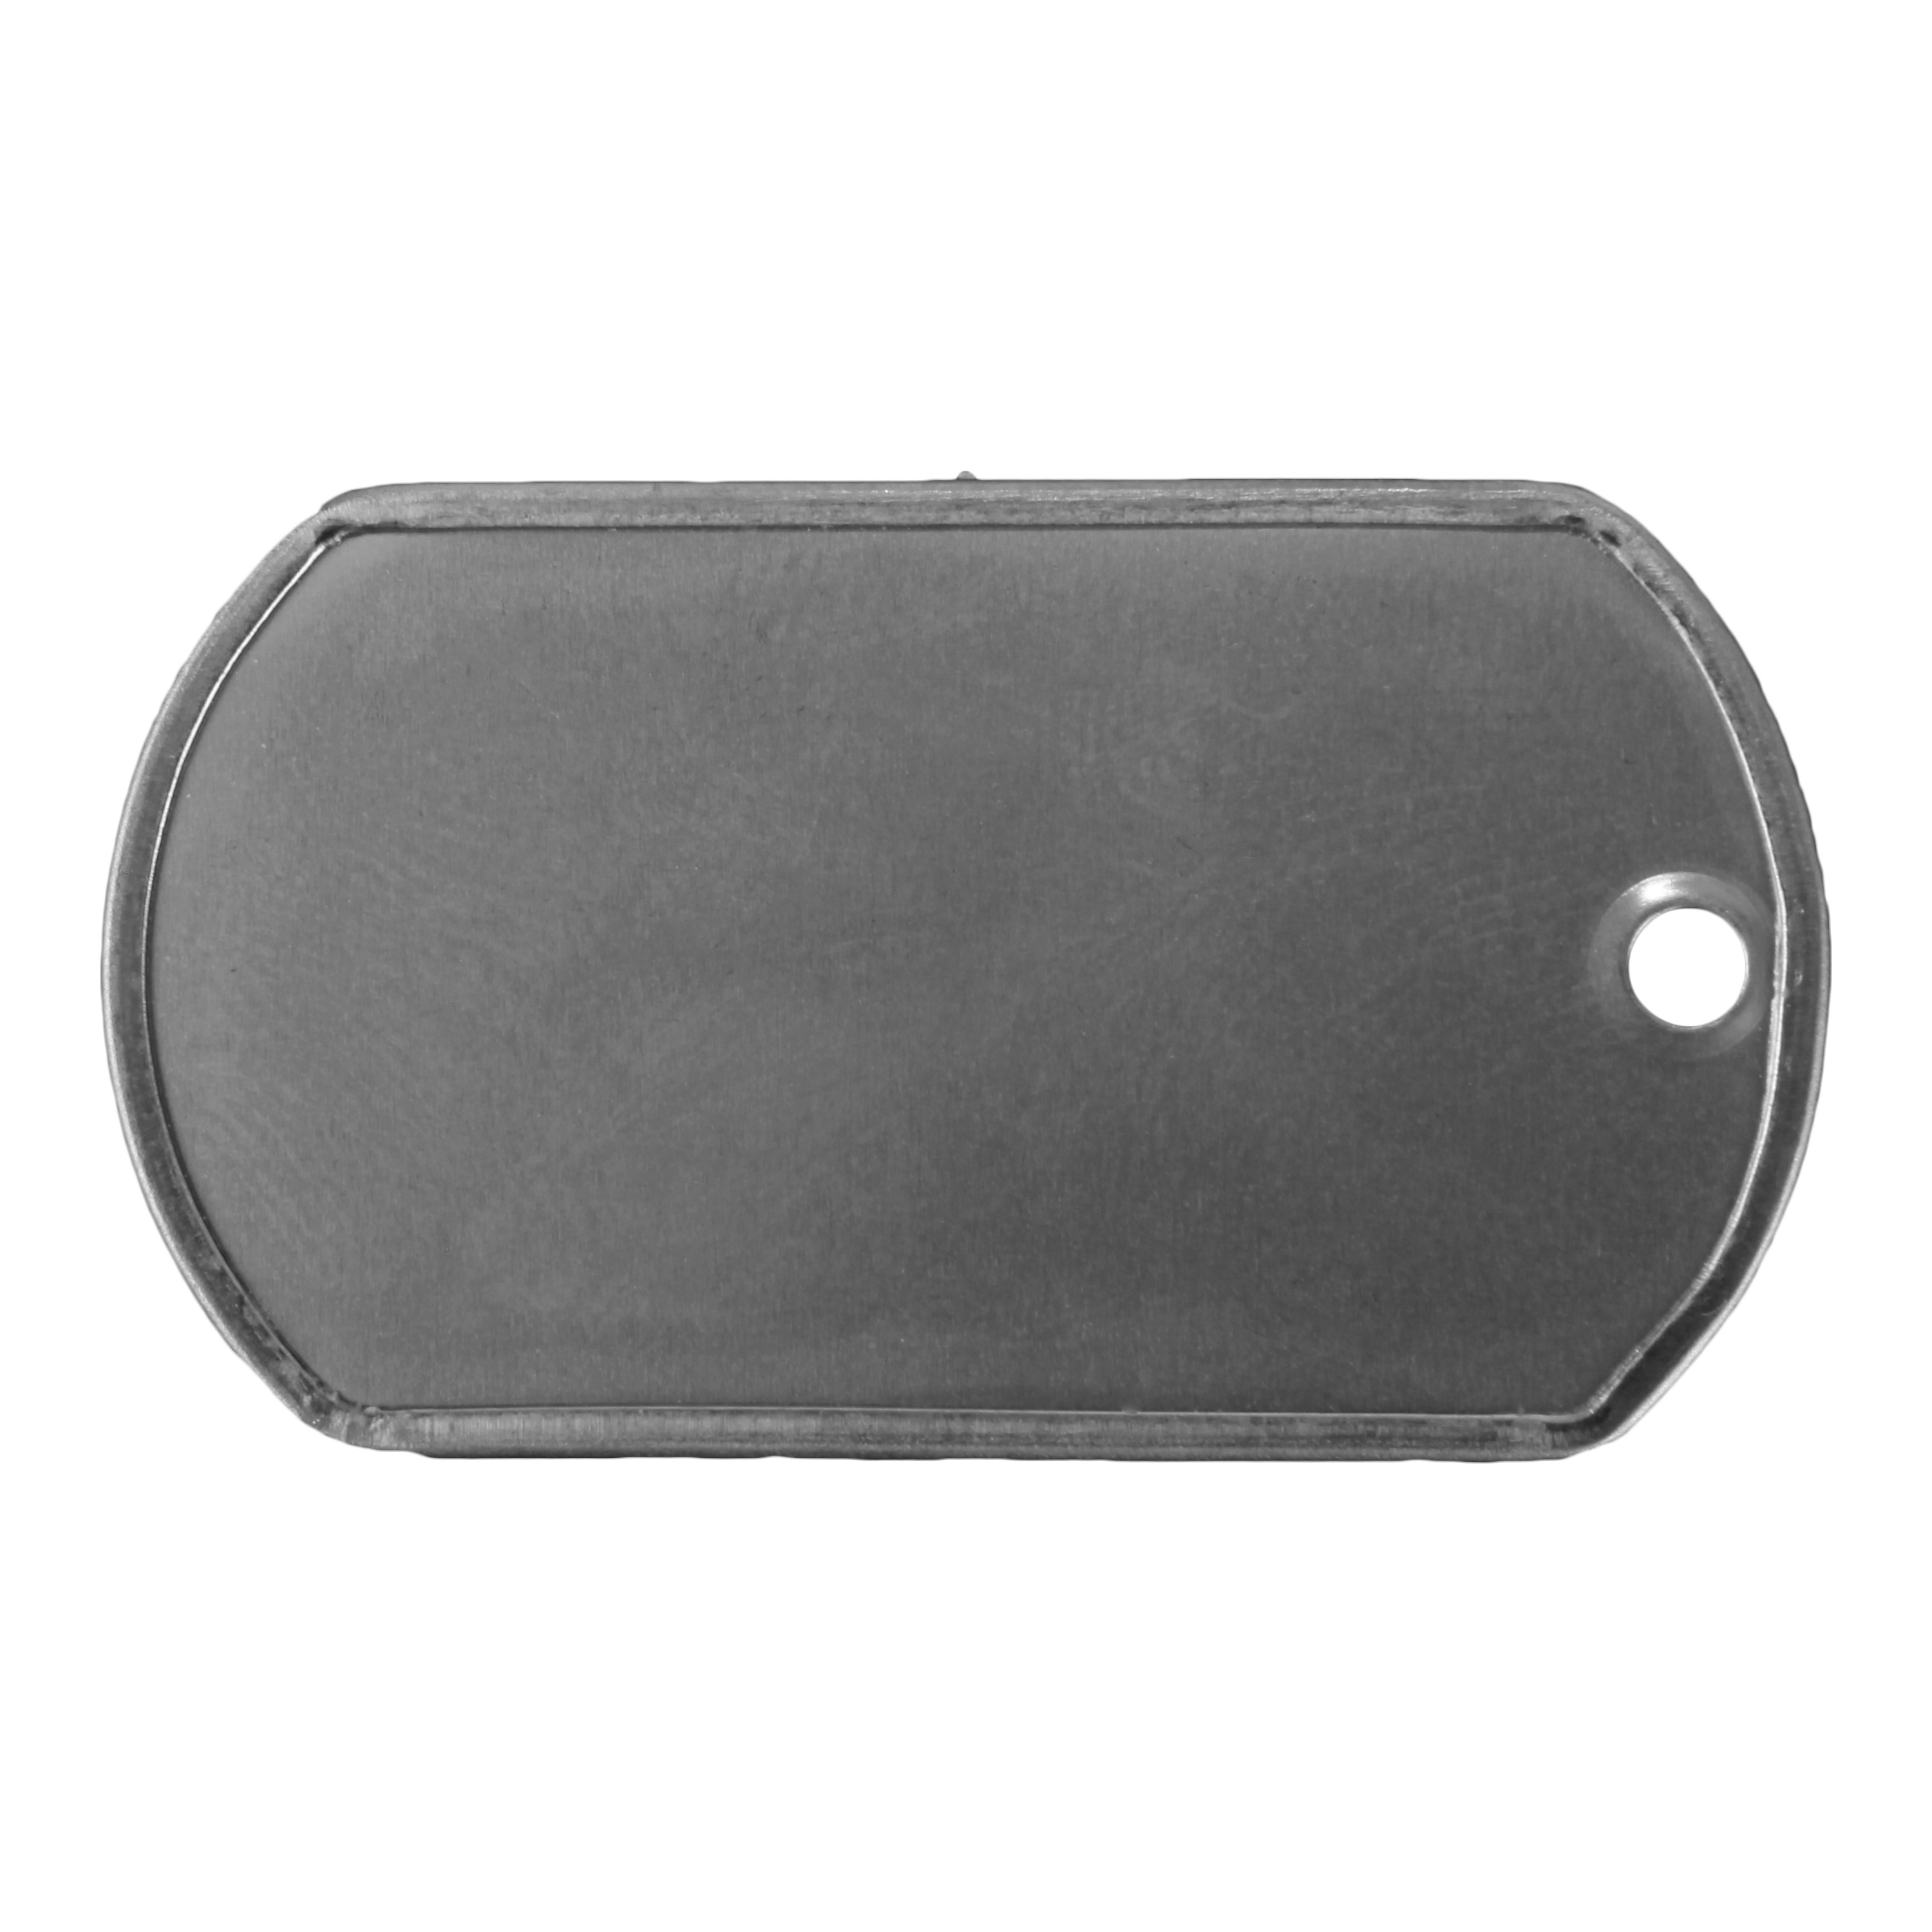 I.D. Tags U.S. Dog Tags Stainless Steel